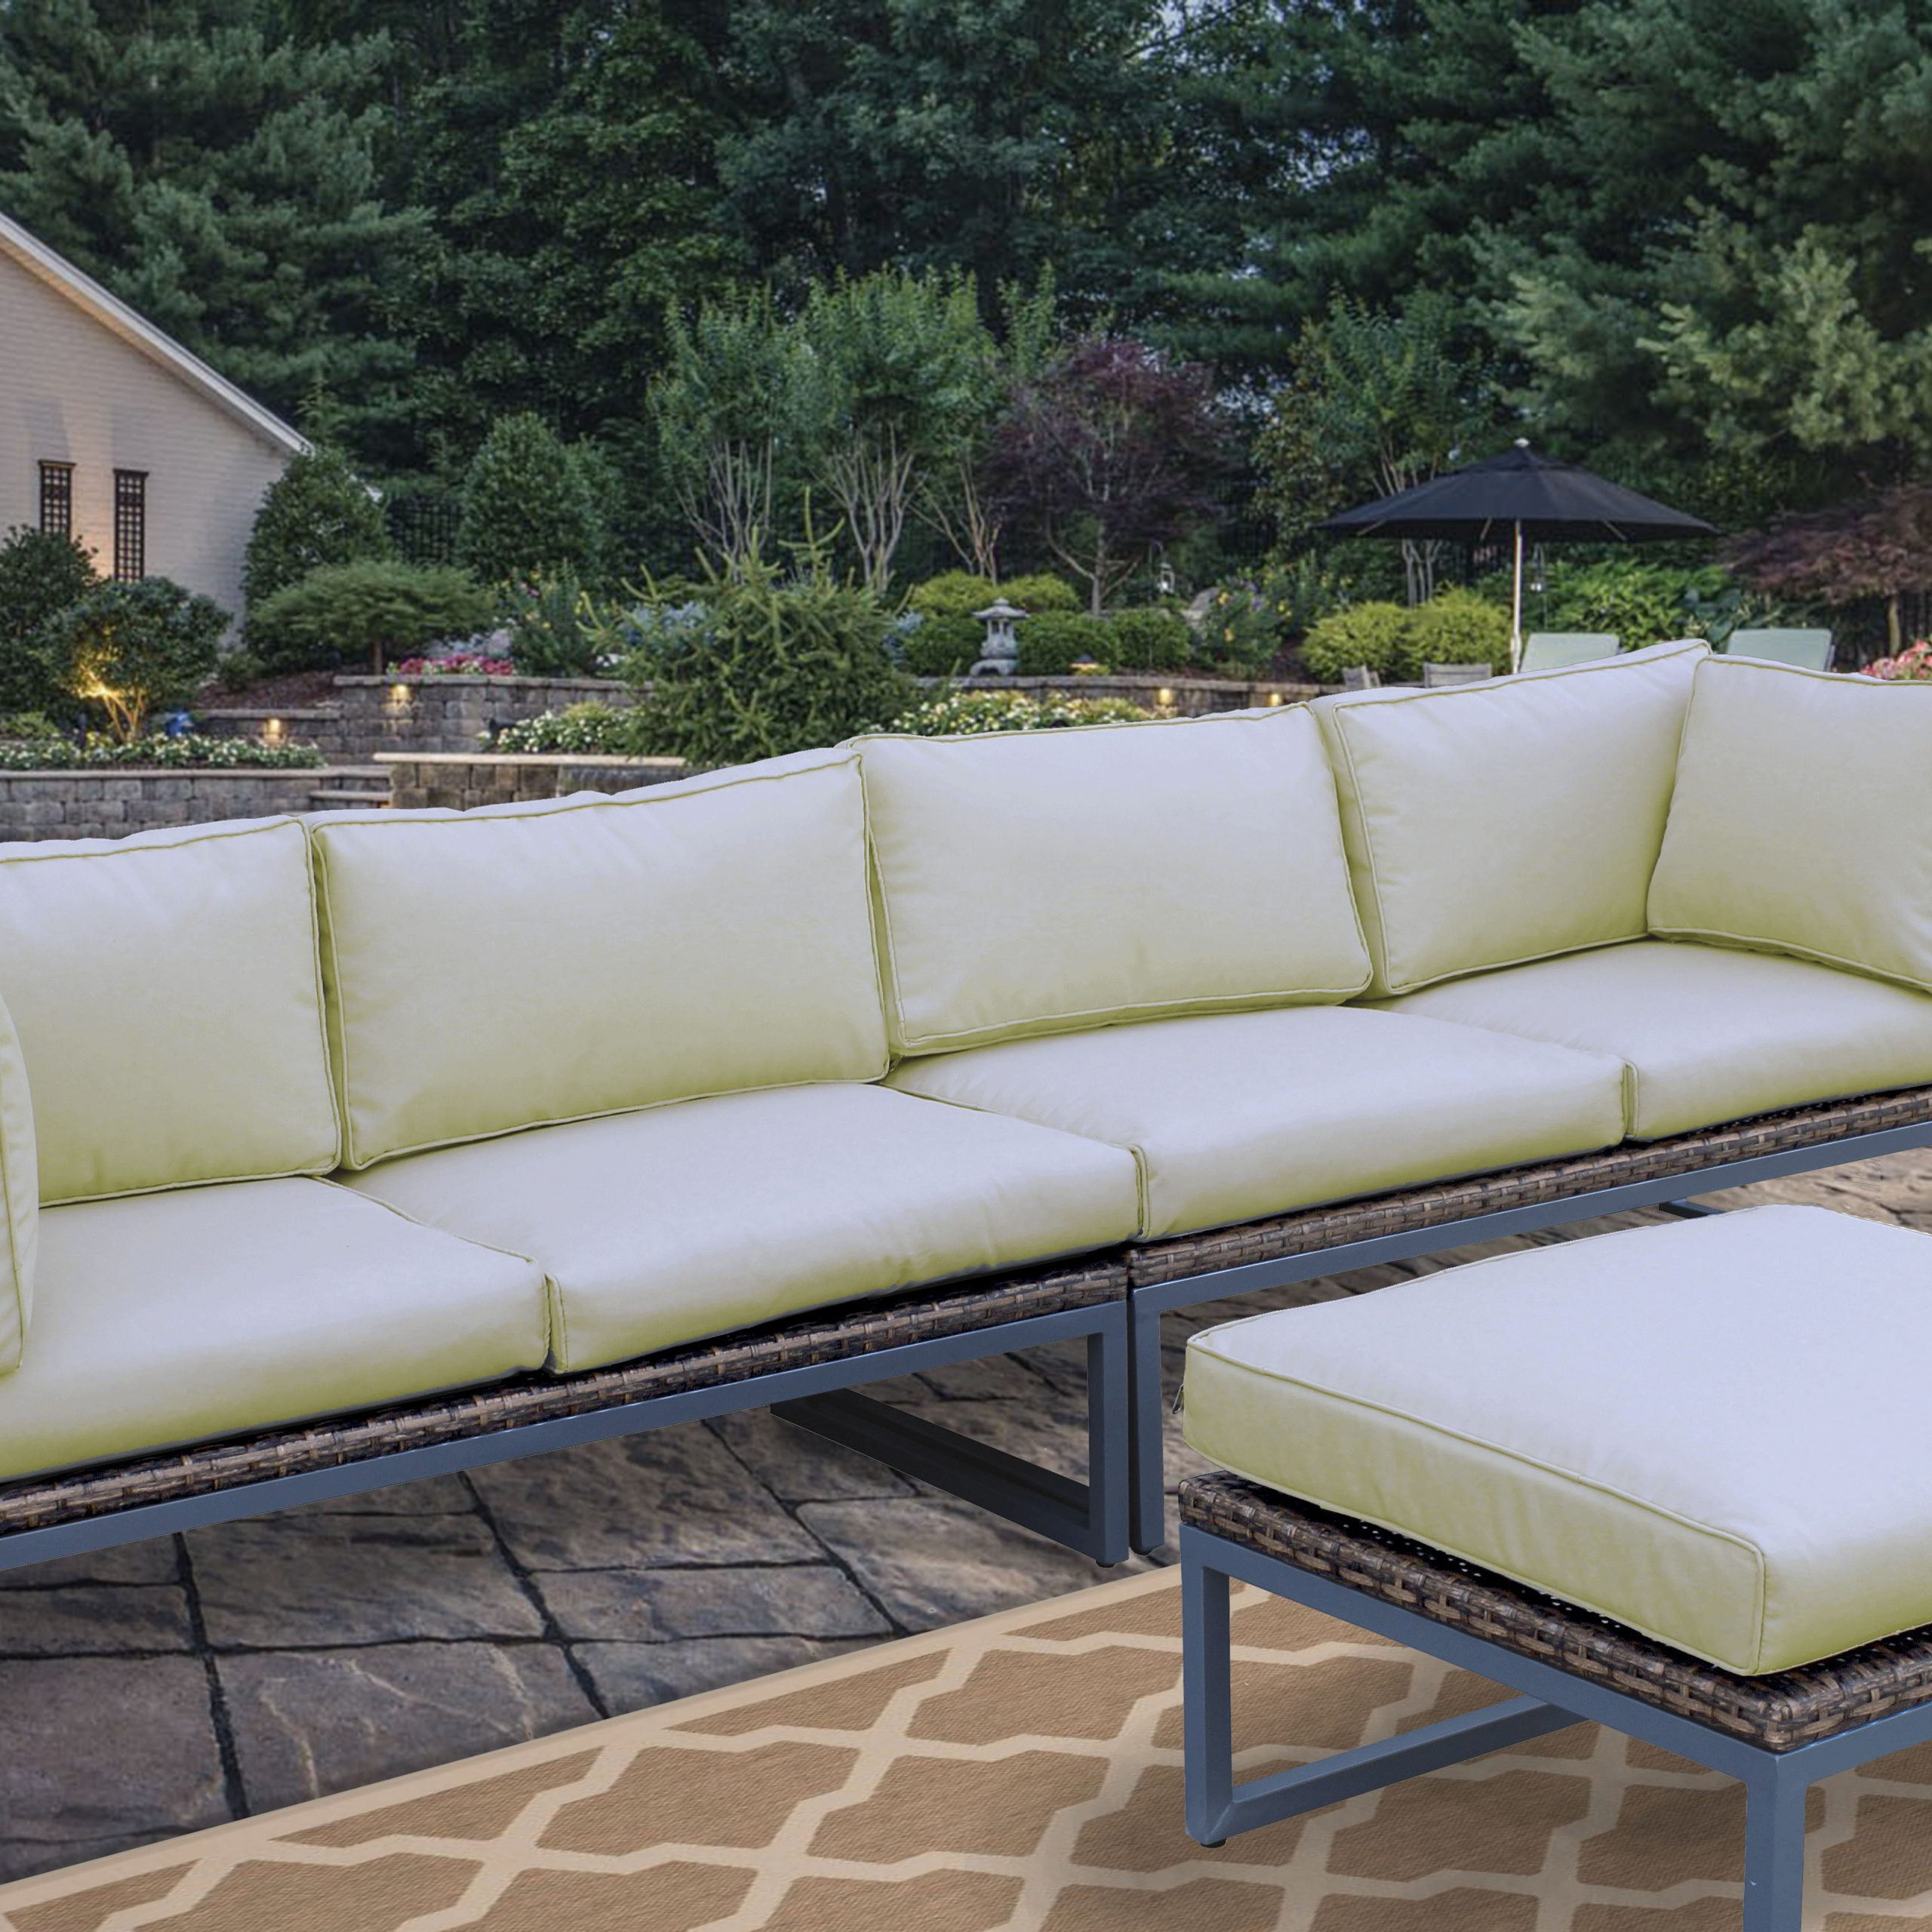 Most Current Brayden Studio Honeycutt Patio Sofa With Cushions & Reviews In Baca Patio Sofas With Cushions (View 17 of 25)